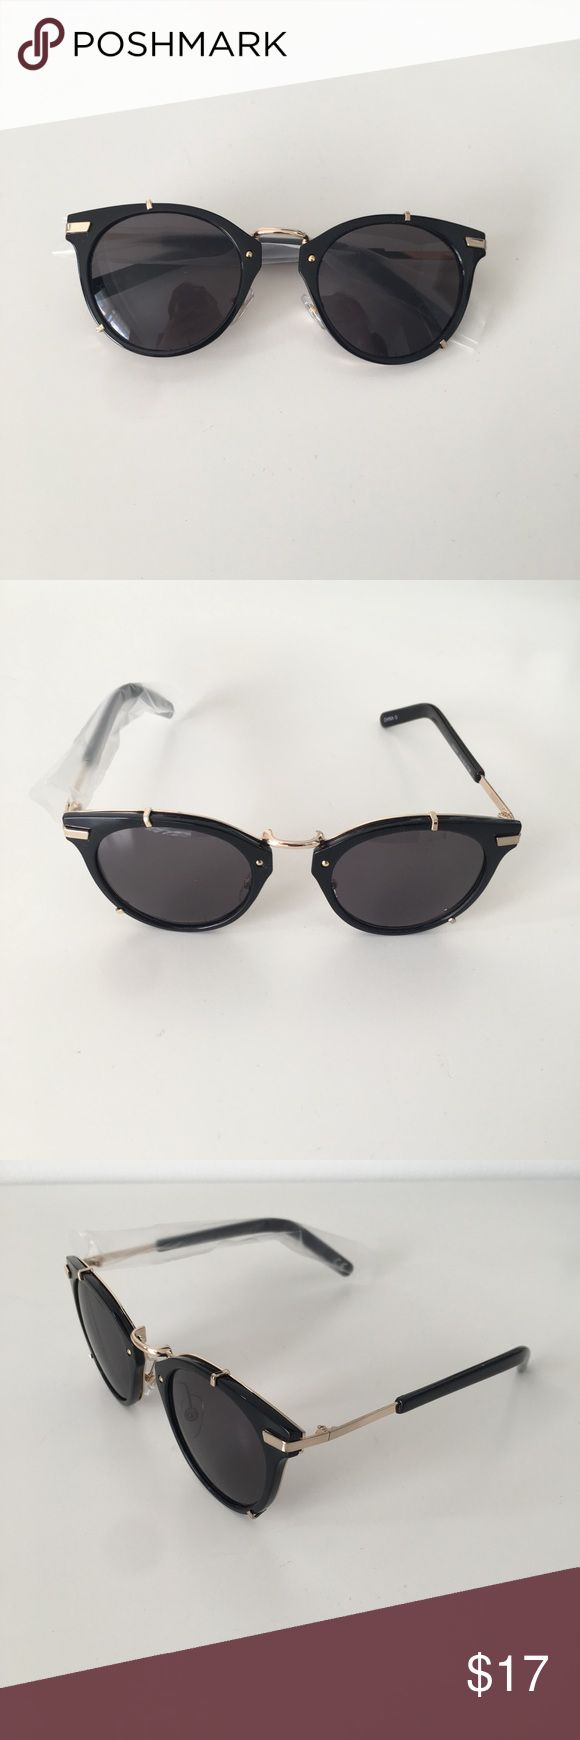 Black & Gold Sunglasses These Foster Grant sunglasses combine a retro-inspired style with an exquisite shiny black frame and pops of gold accents. The faux gold clips give the illusion of a vintage clip-on that's oh so trendy right now! Featuring 100% UVA/UVB protection, these sunglasses are the perfect blend of form and function. Brand new, never worn! Brandy Melville Accessories Sunglasses